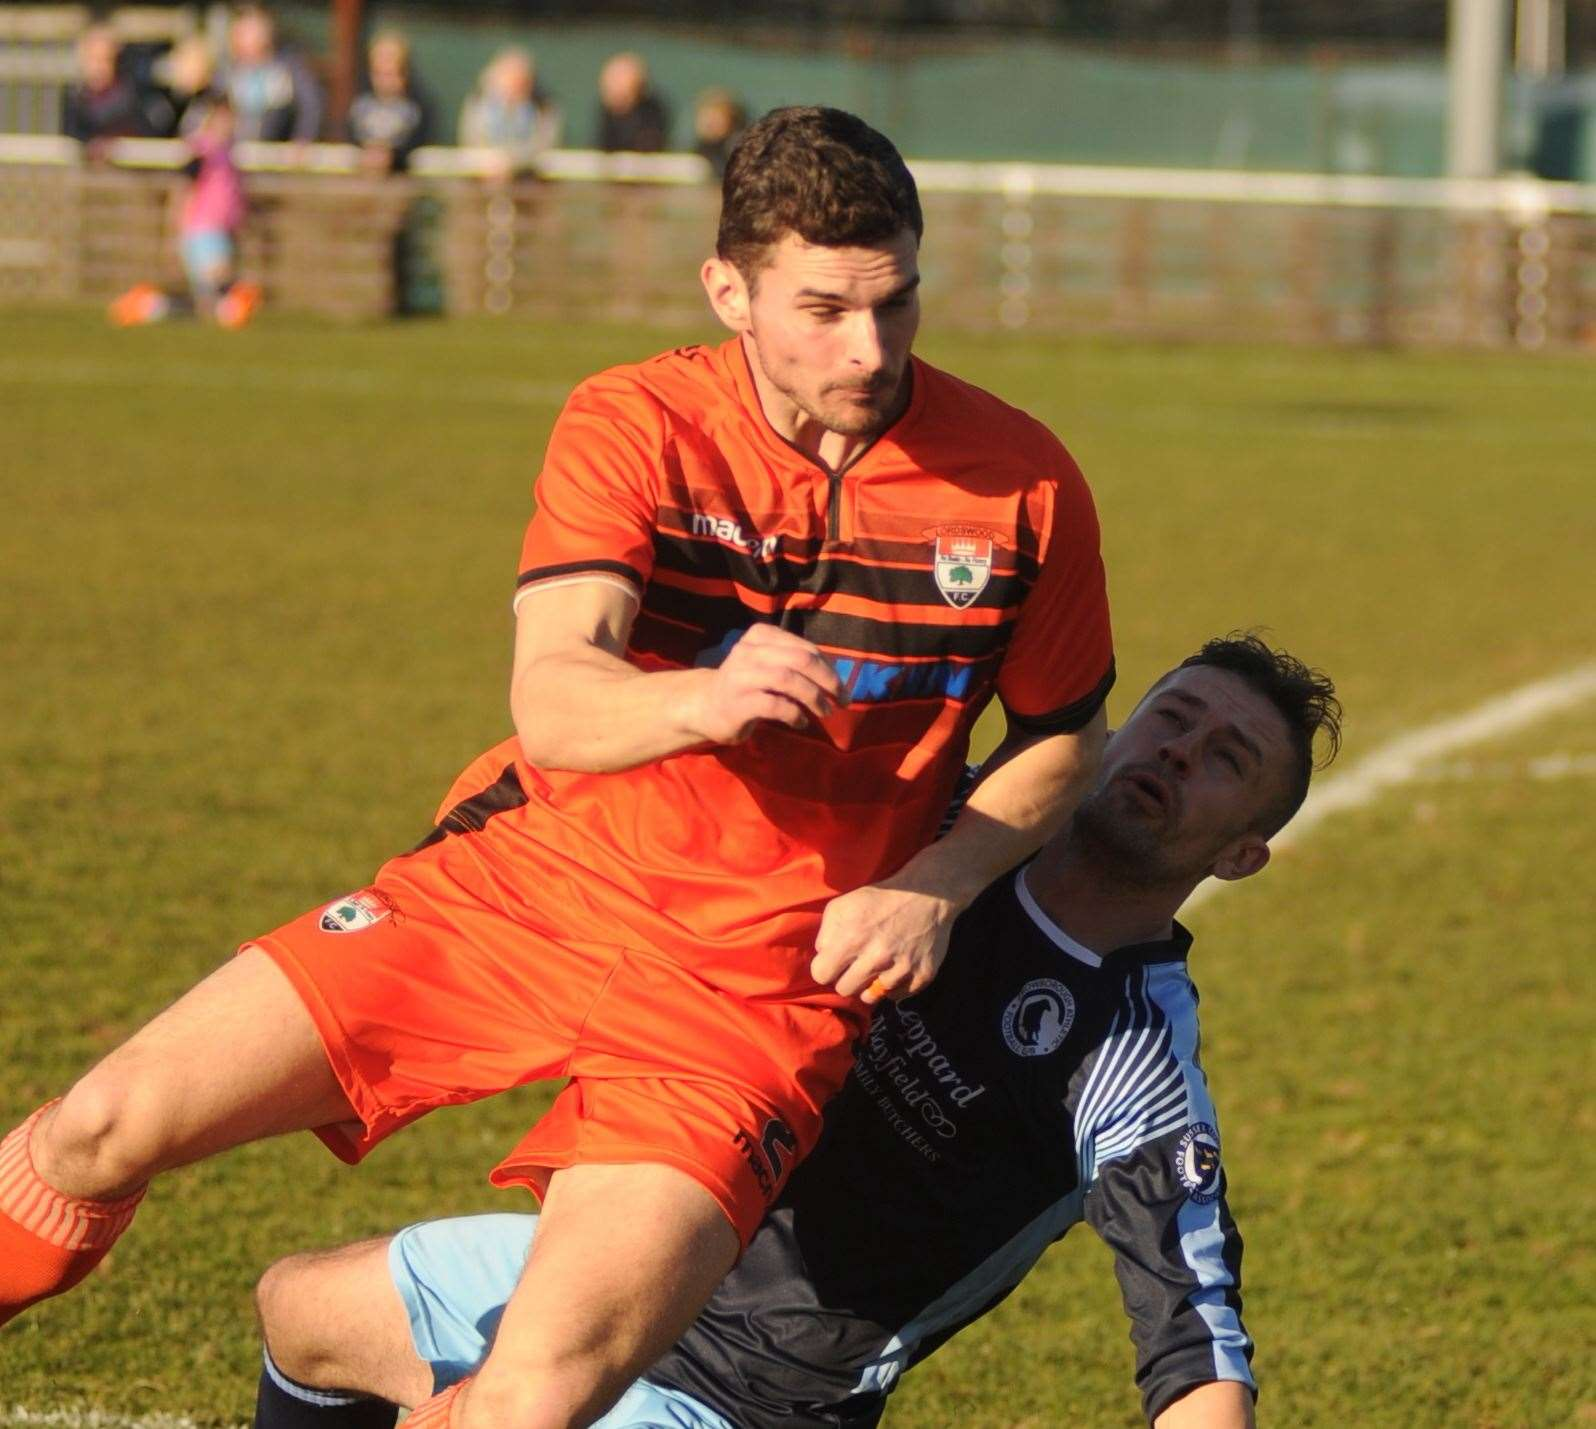 Joe Kane in action for Lordswood against Crowborough this season Picture: Steve Crispe